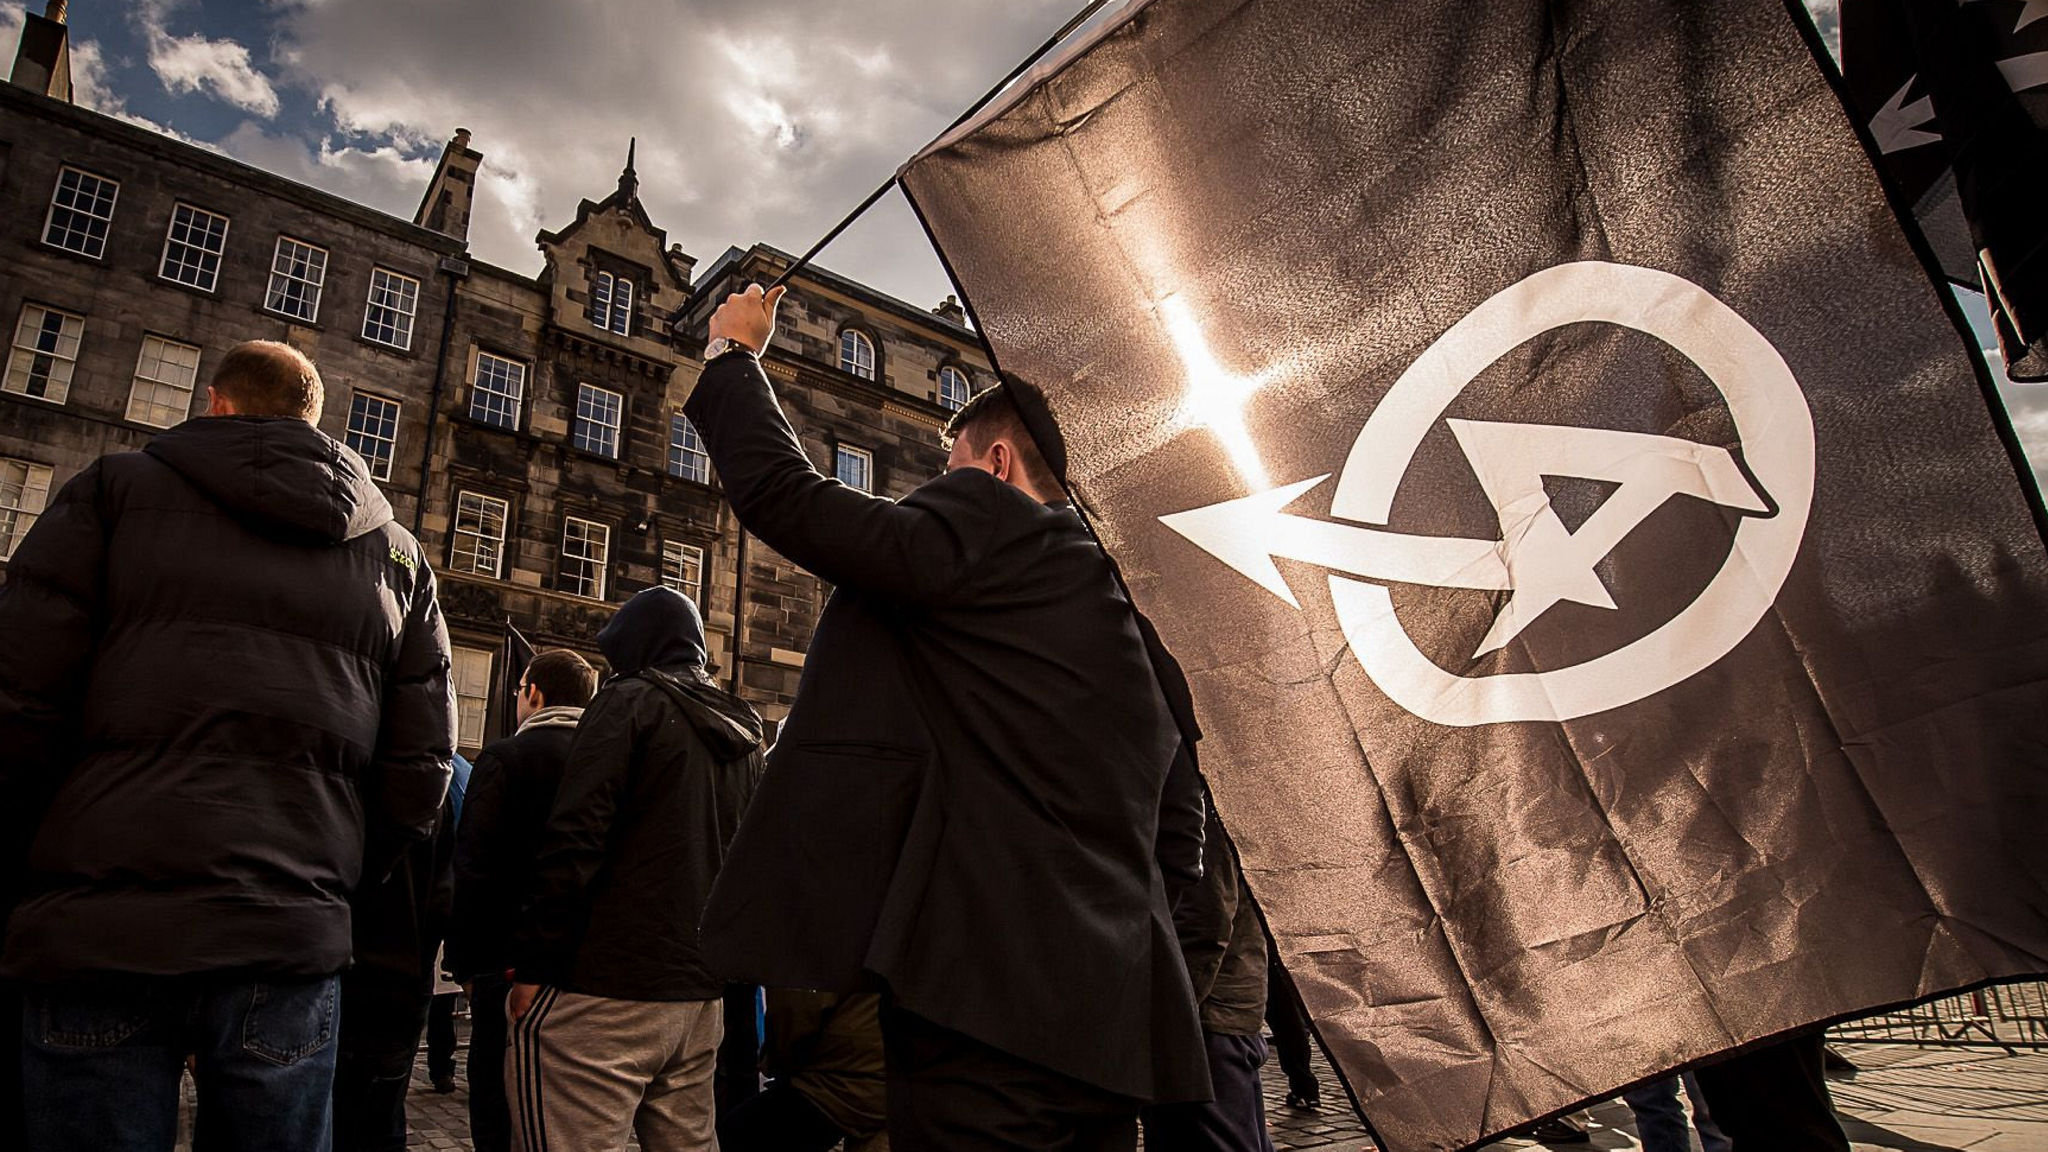 Far-right extremists were likely to be resurgent in 2021